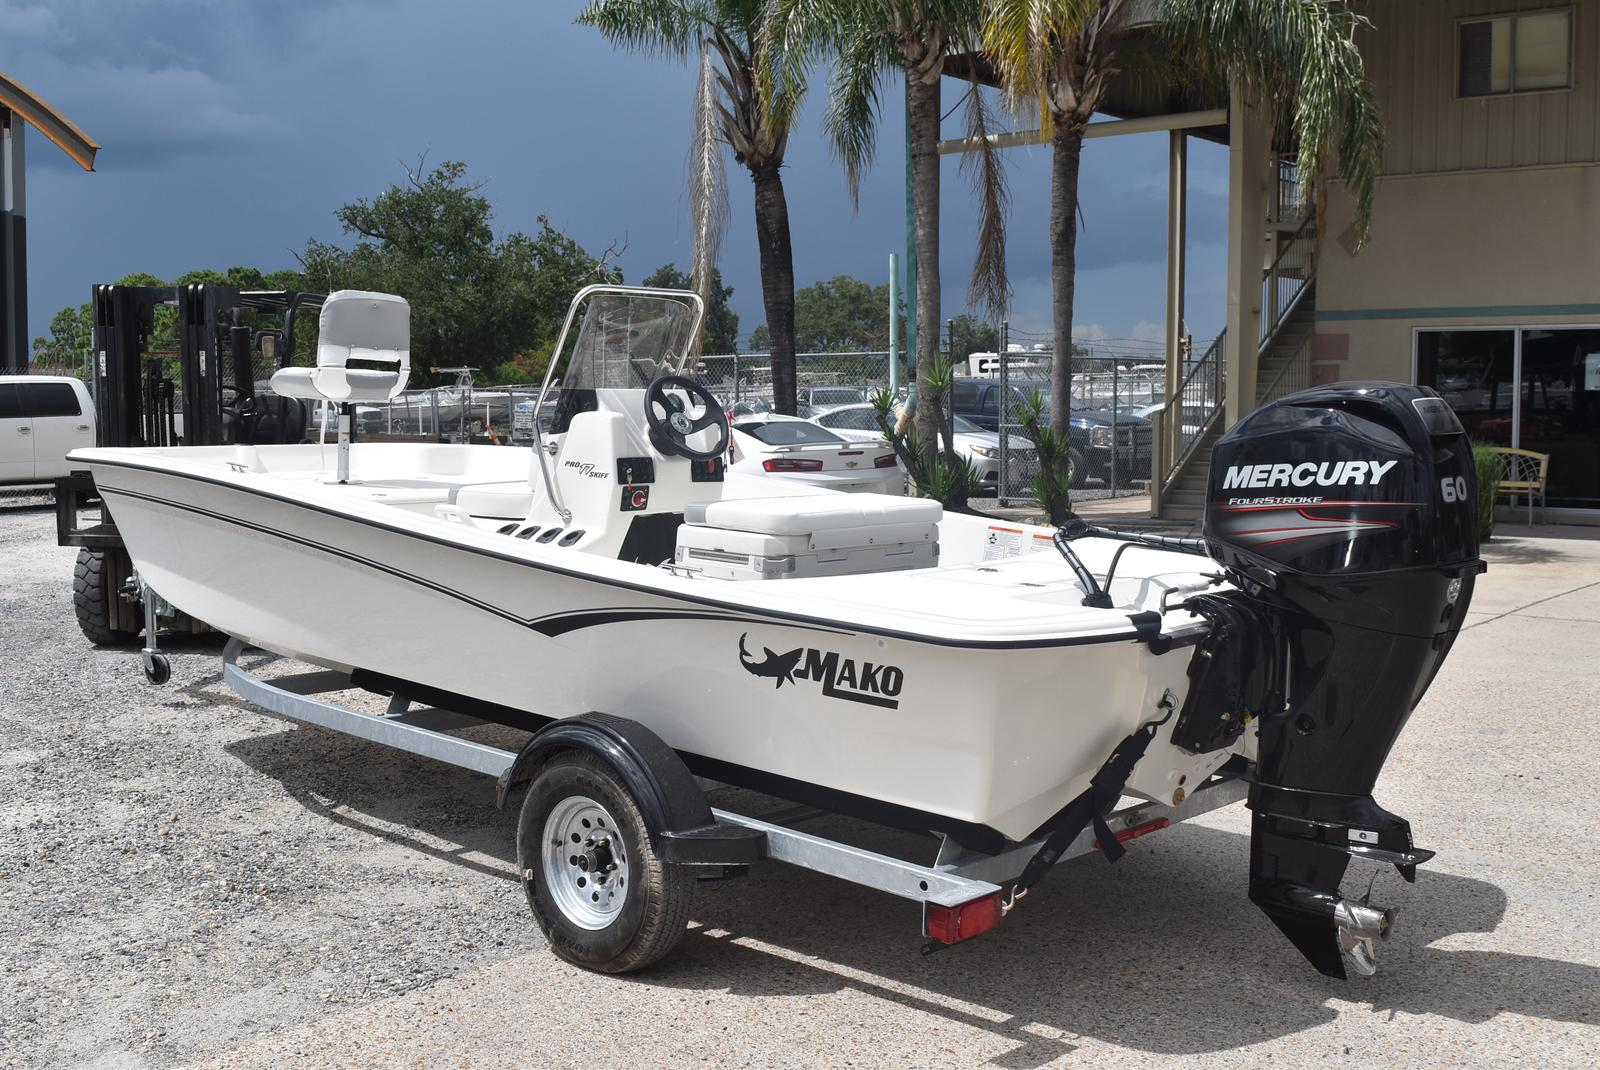 2020 Mako boat for sale, model of the boat is Pro Skiff 17, 75 ELPT & Image # 174 of 702